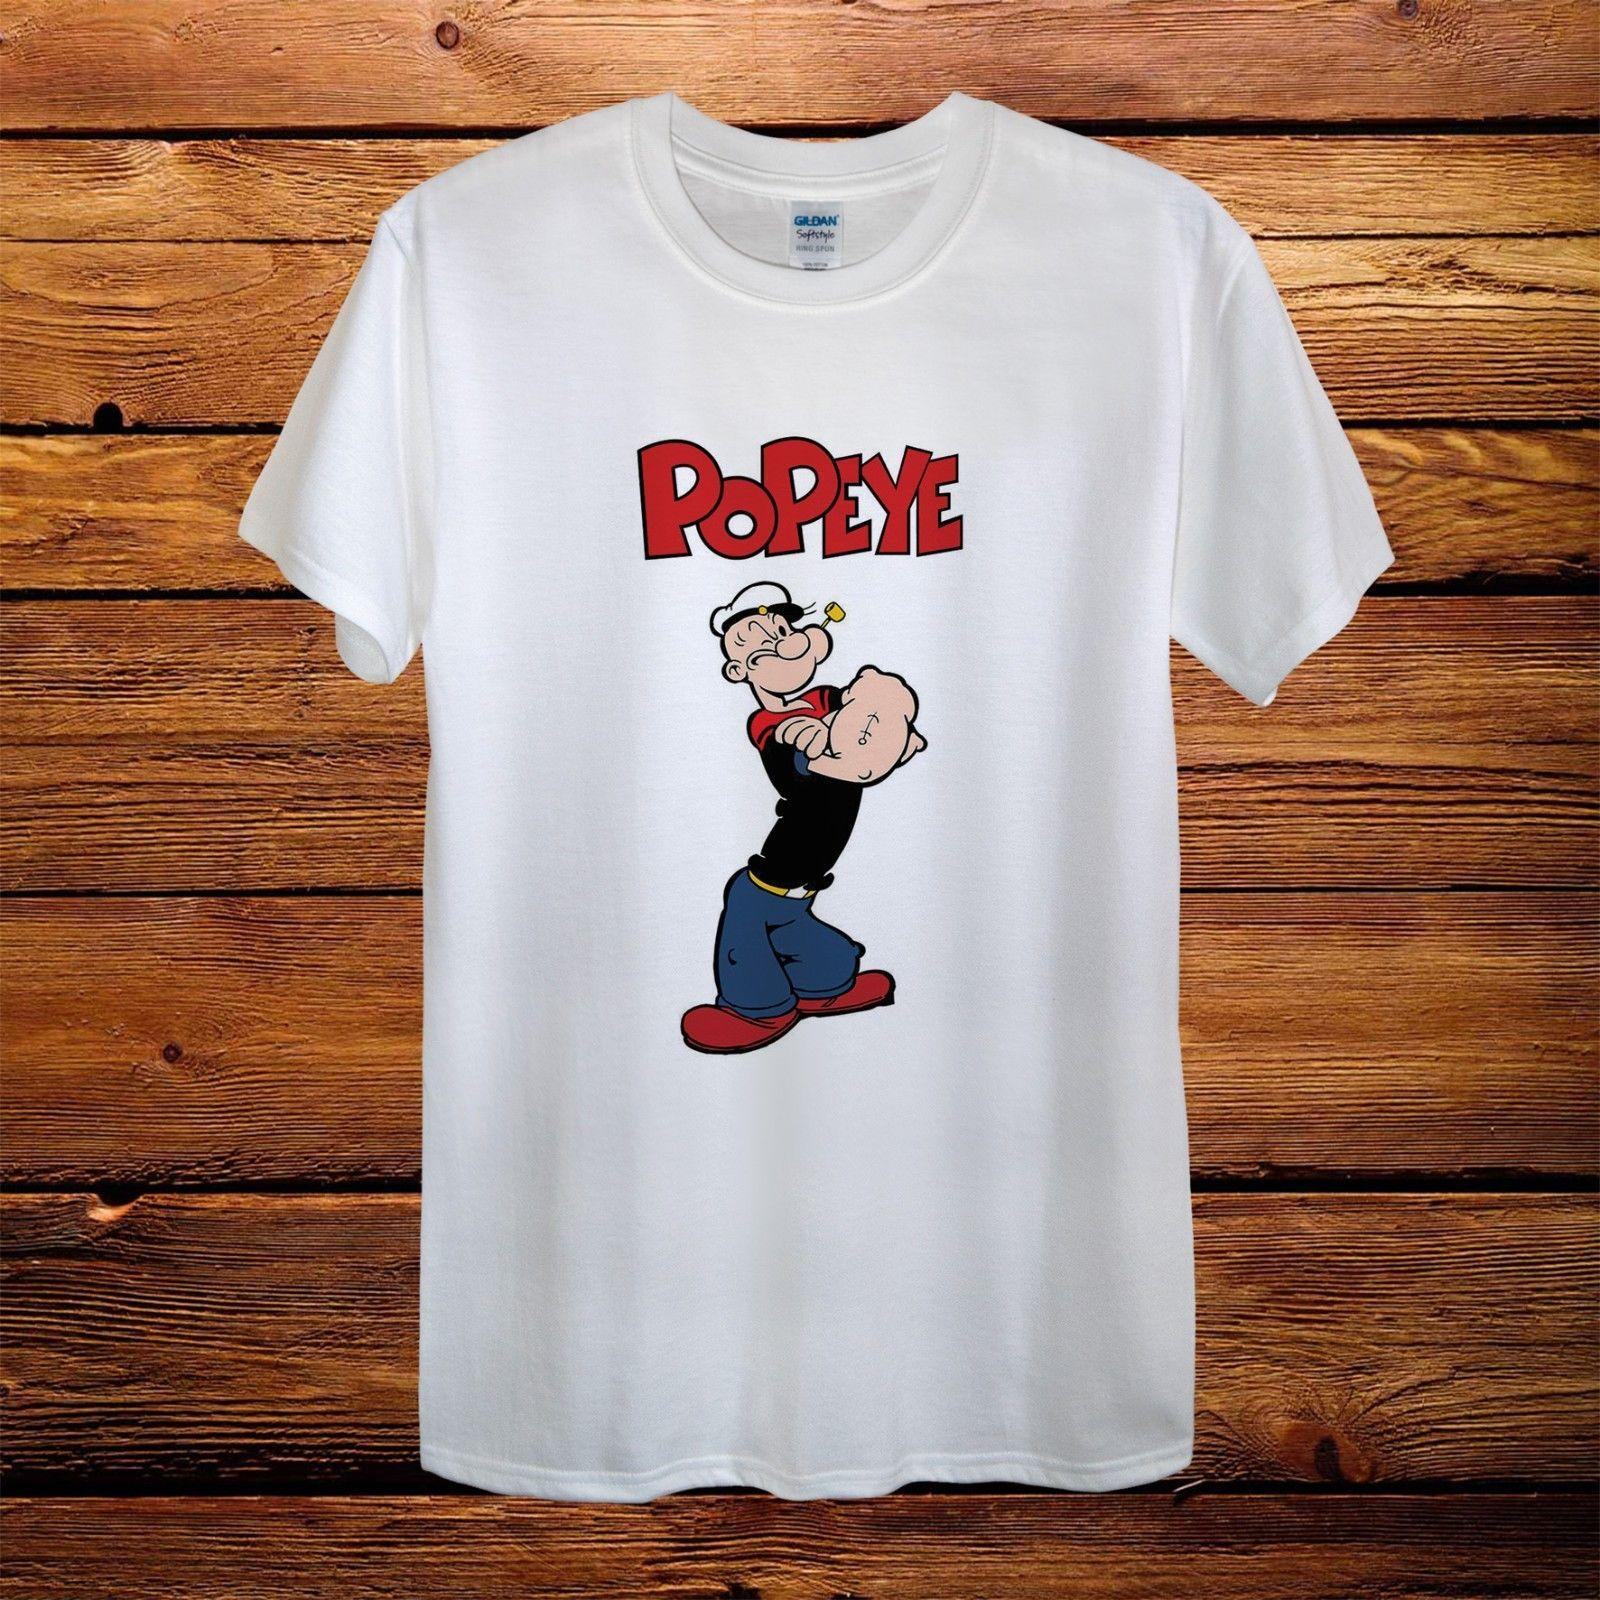 The Sailor Man Popeye Comics Gift Fun Top Design T-Shirt Men Unisex Women Funny free shipping